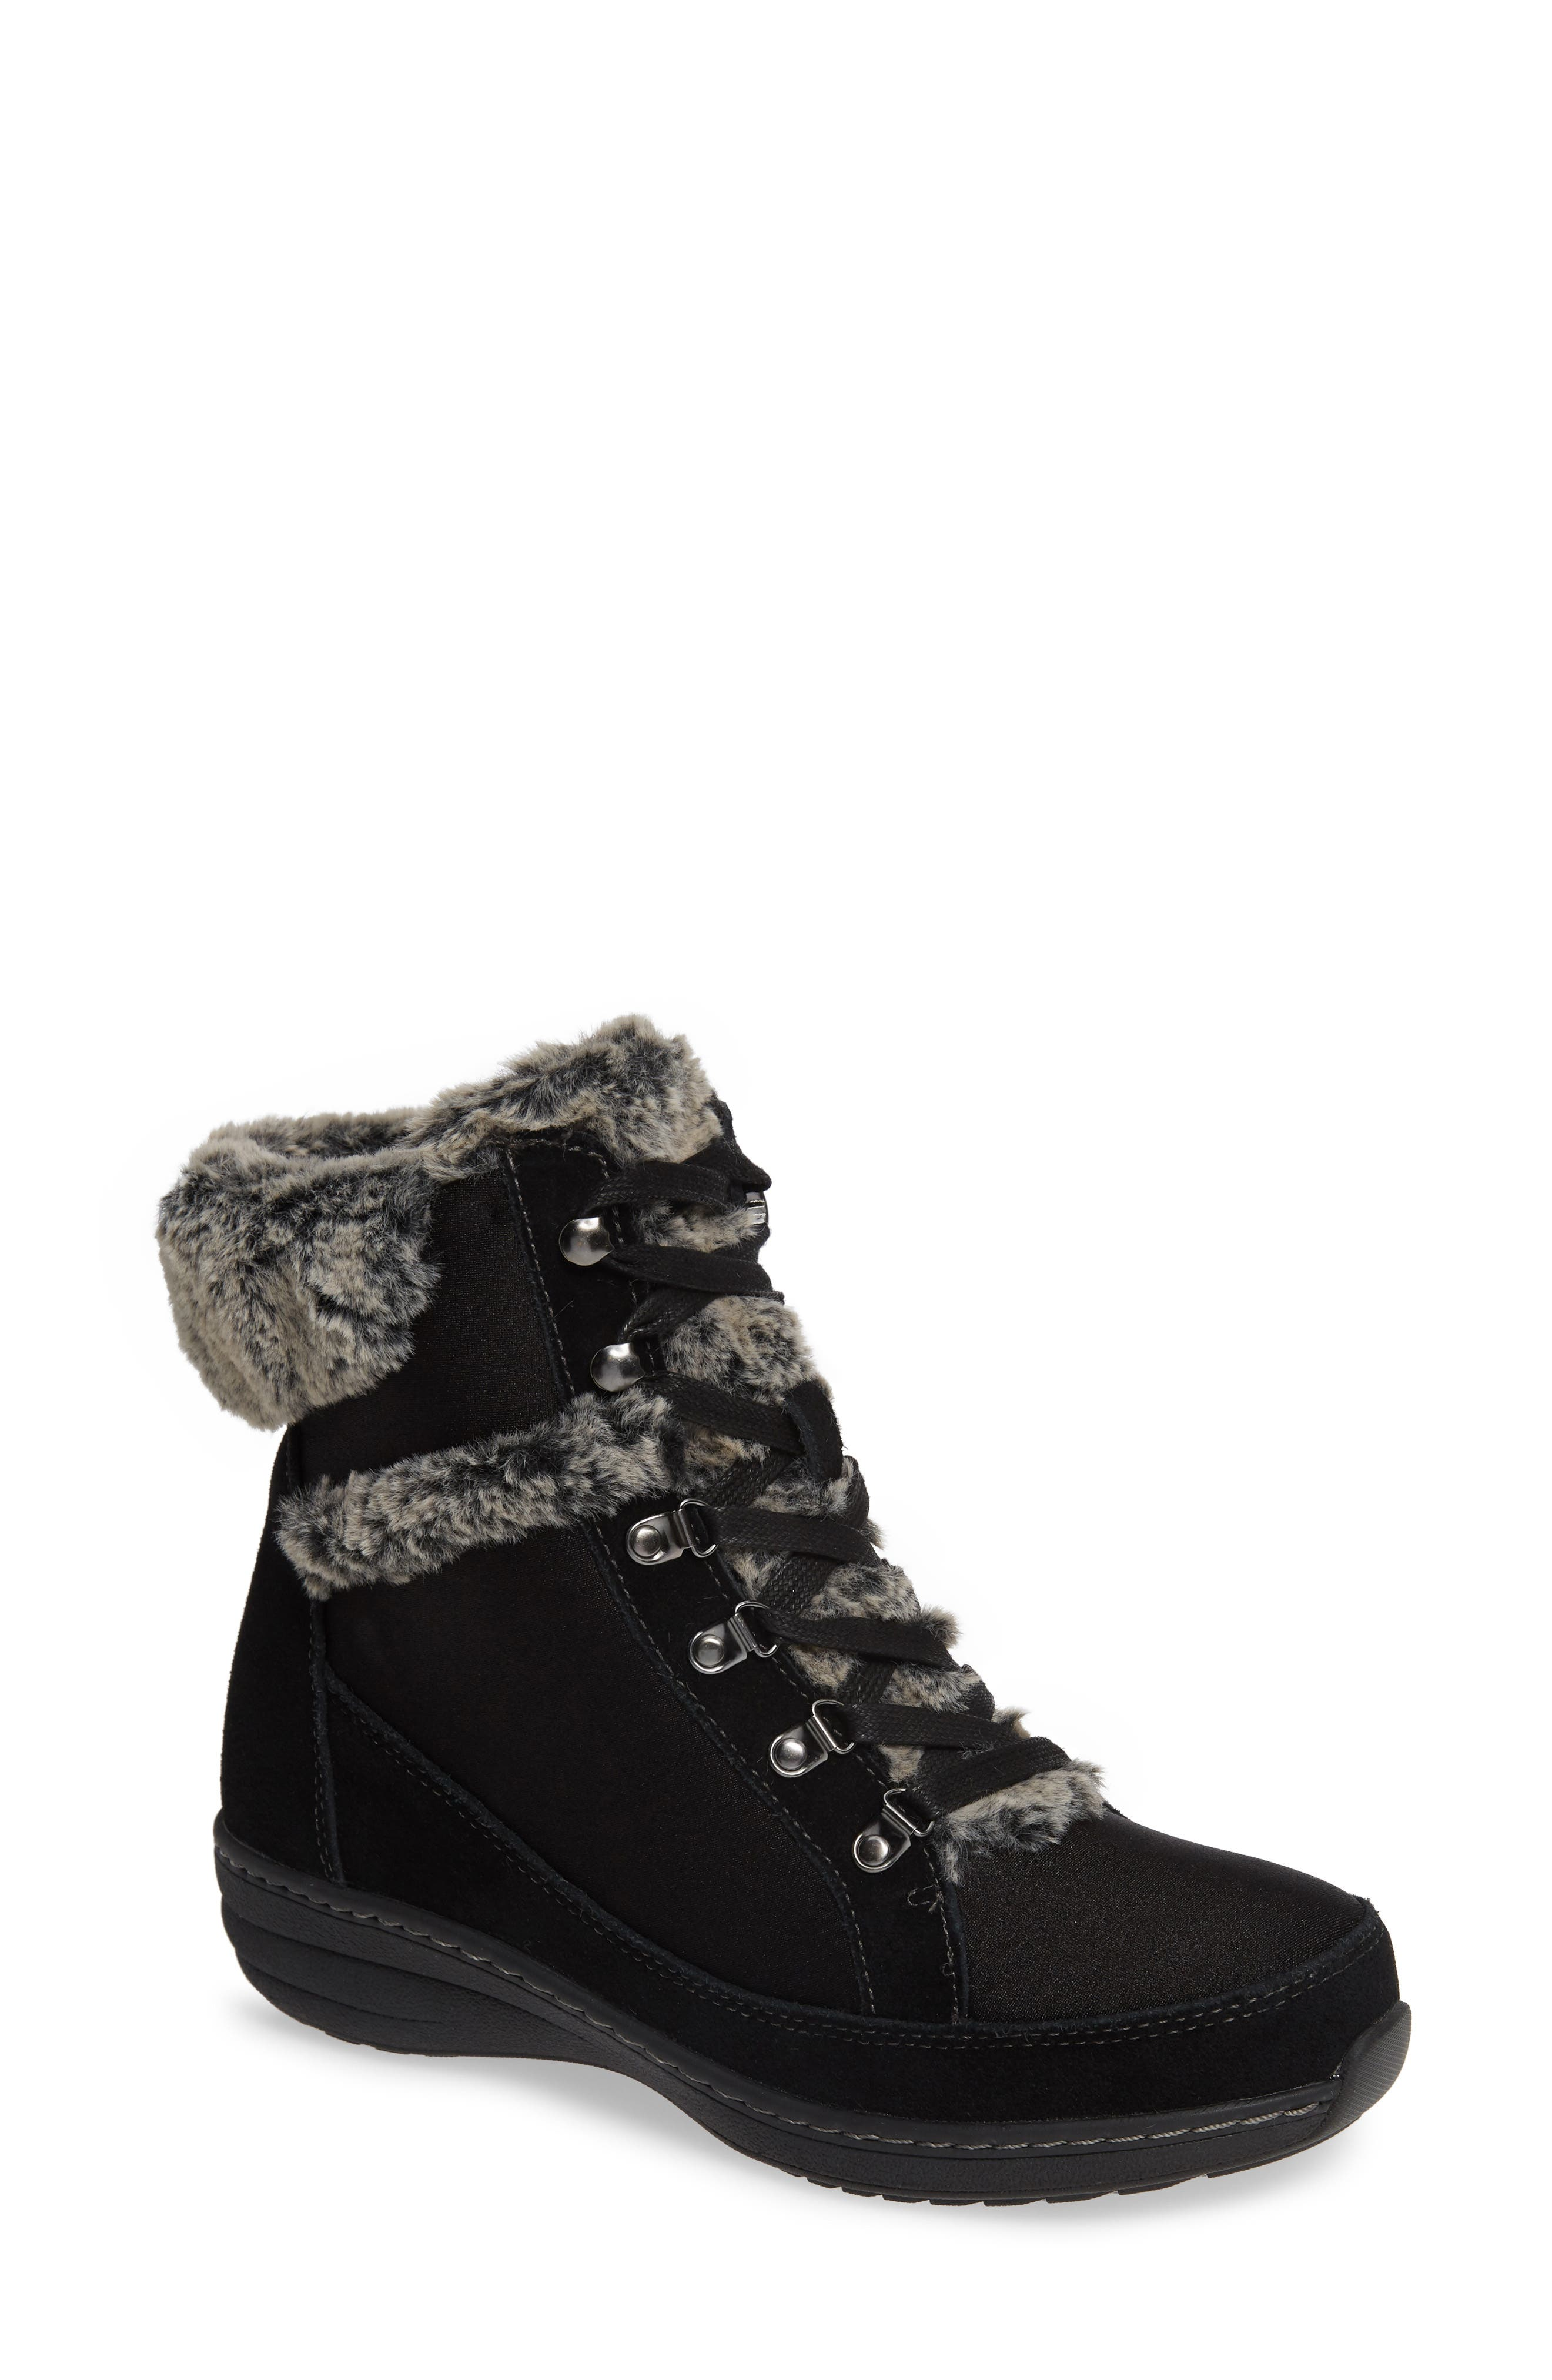 Aetrex Fiona Faux Fur Lined Boot - Black